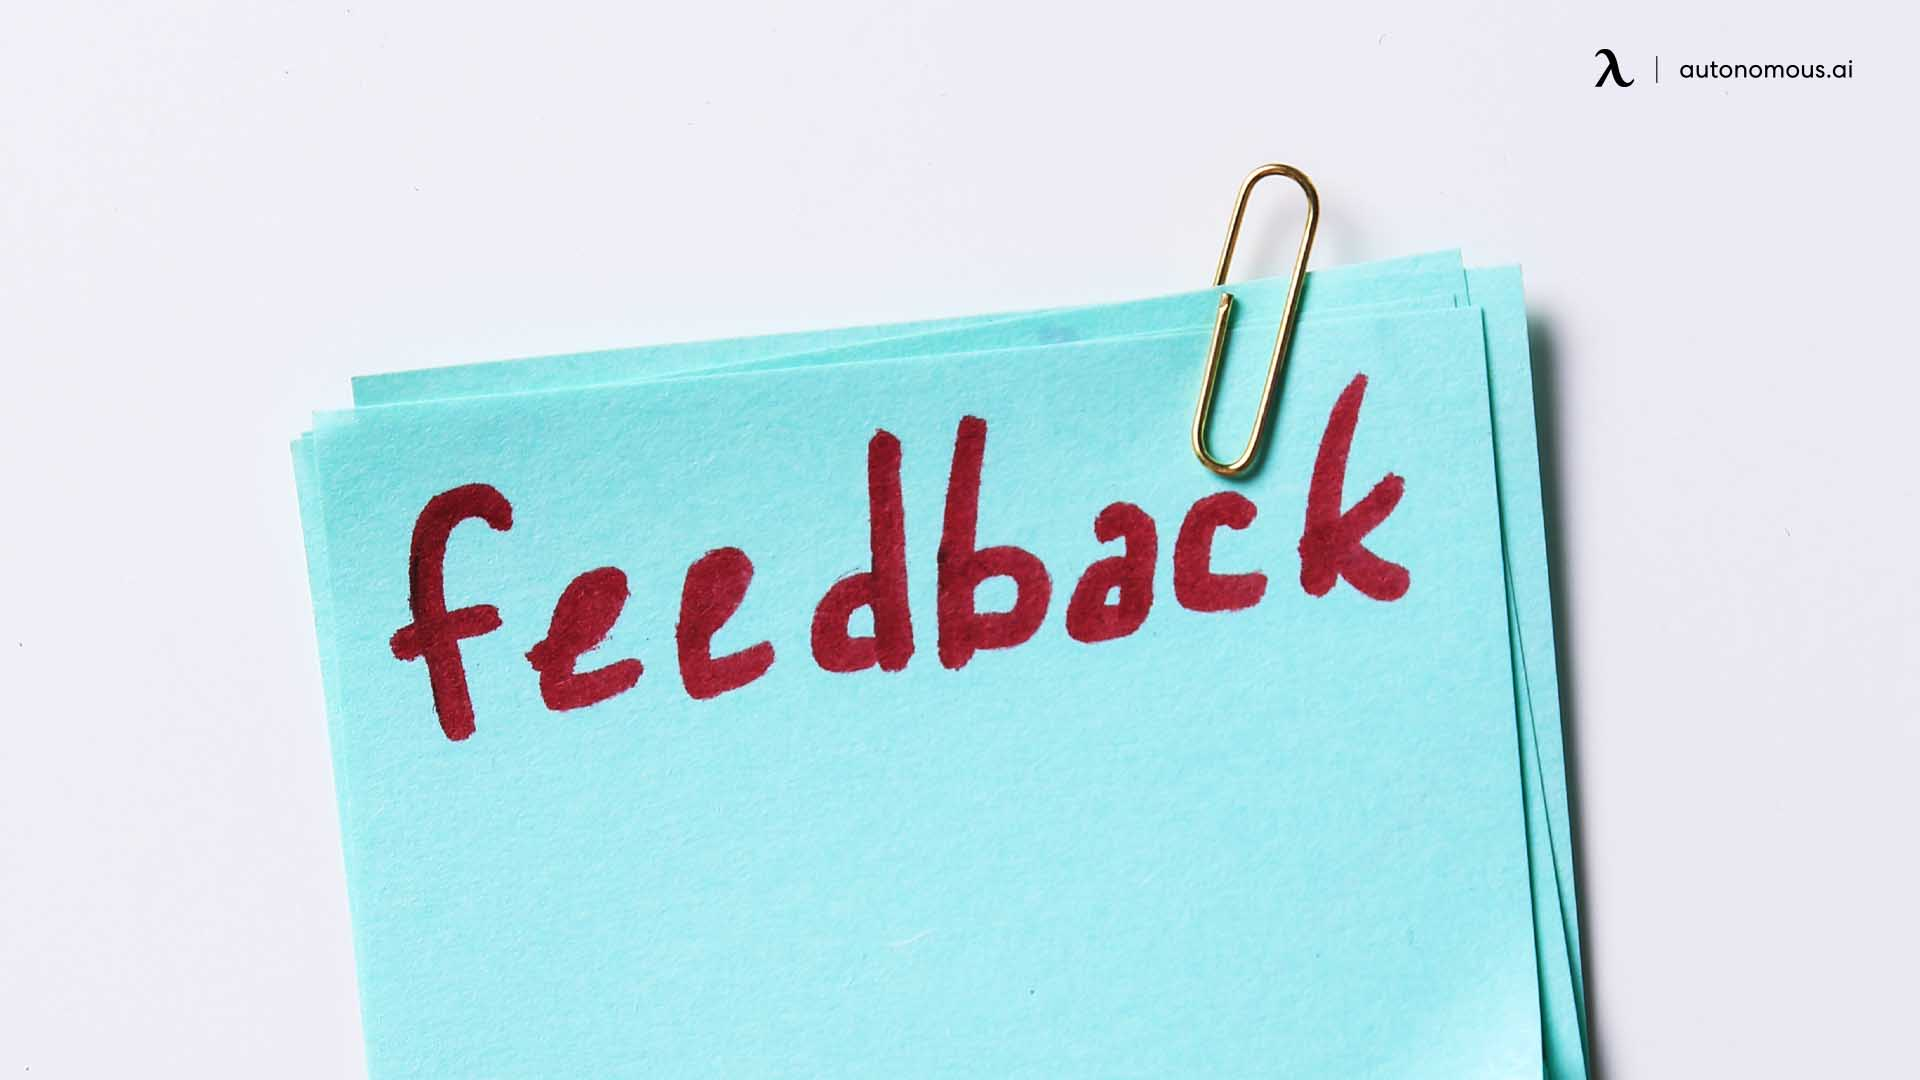 What Makes Feedback Valuable?